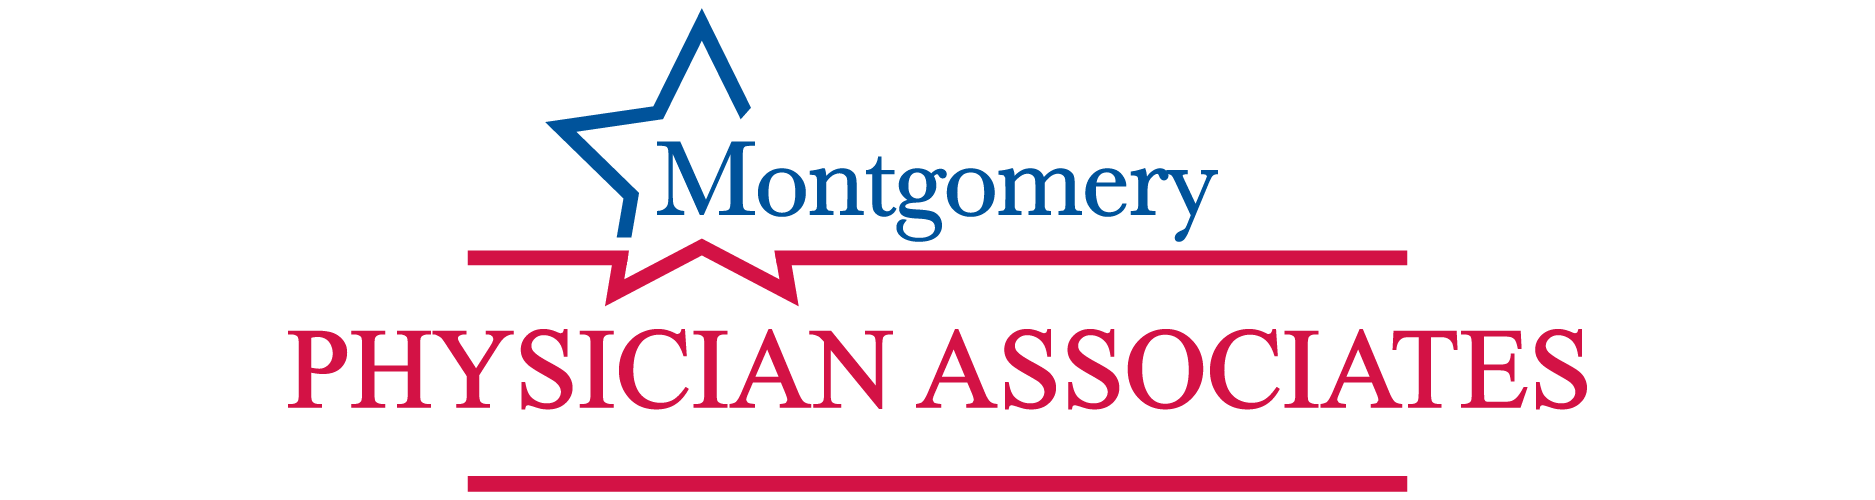 Montgomery Physician Associates